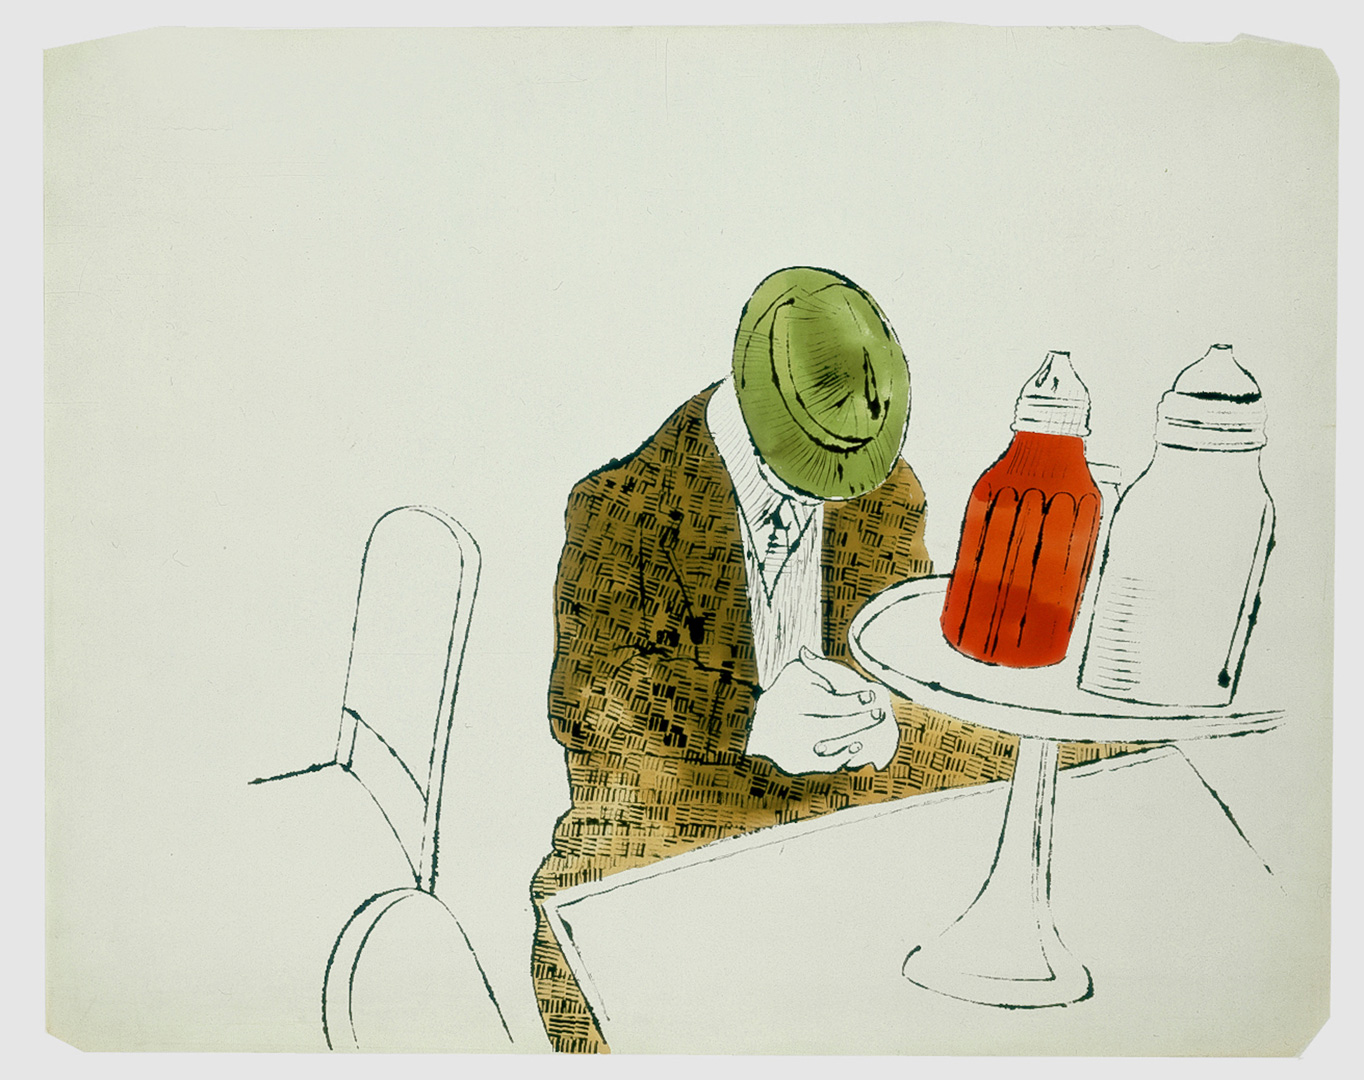 hight resolution of andy warhol male seated at automat counter 1958 ink and watercolor on paper